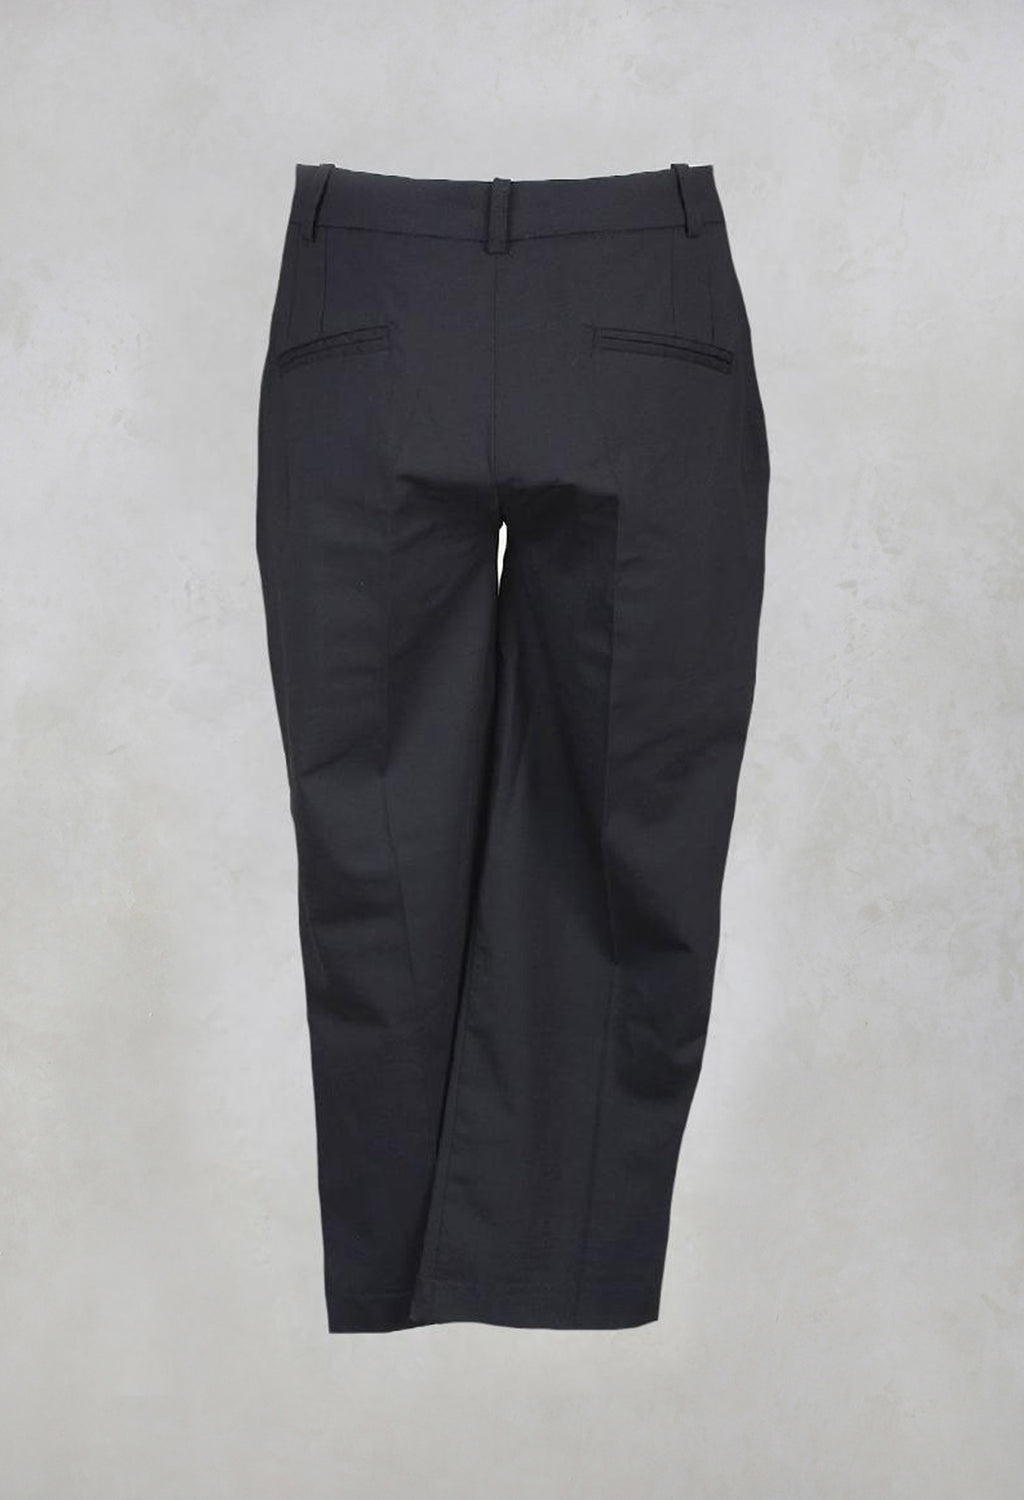 Trousers with Button at Waistband in Black